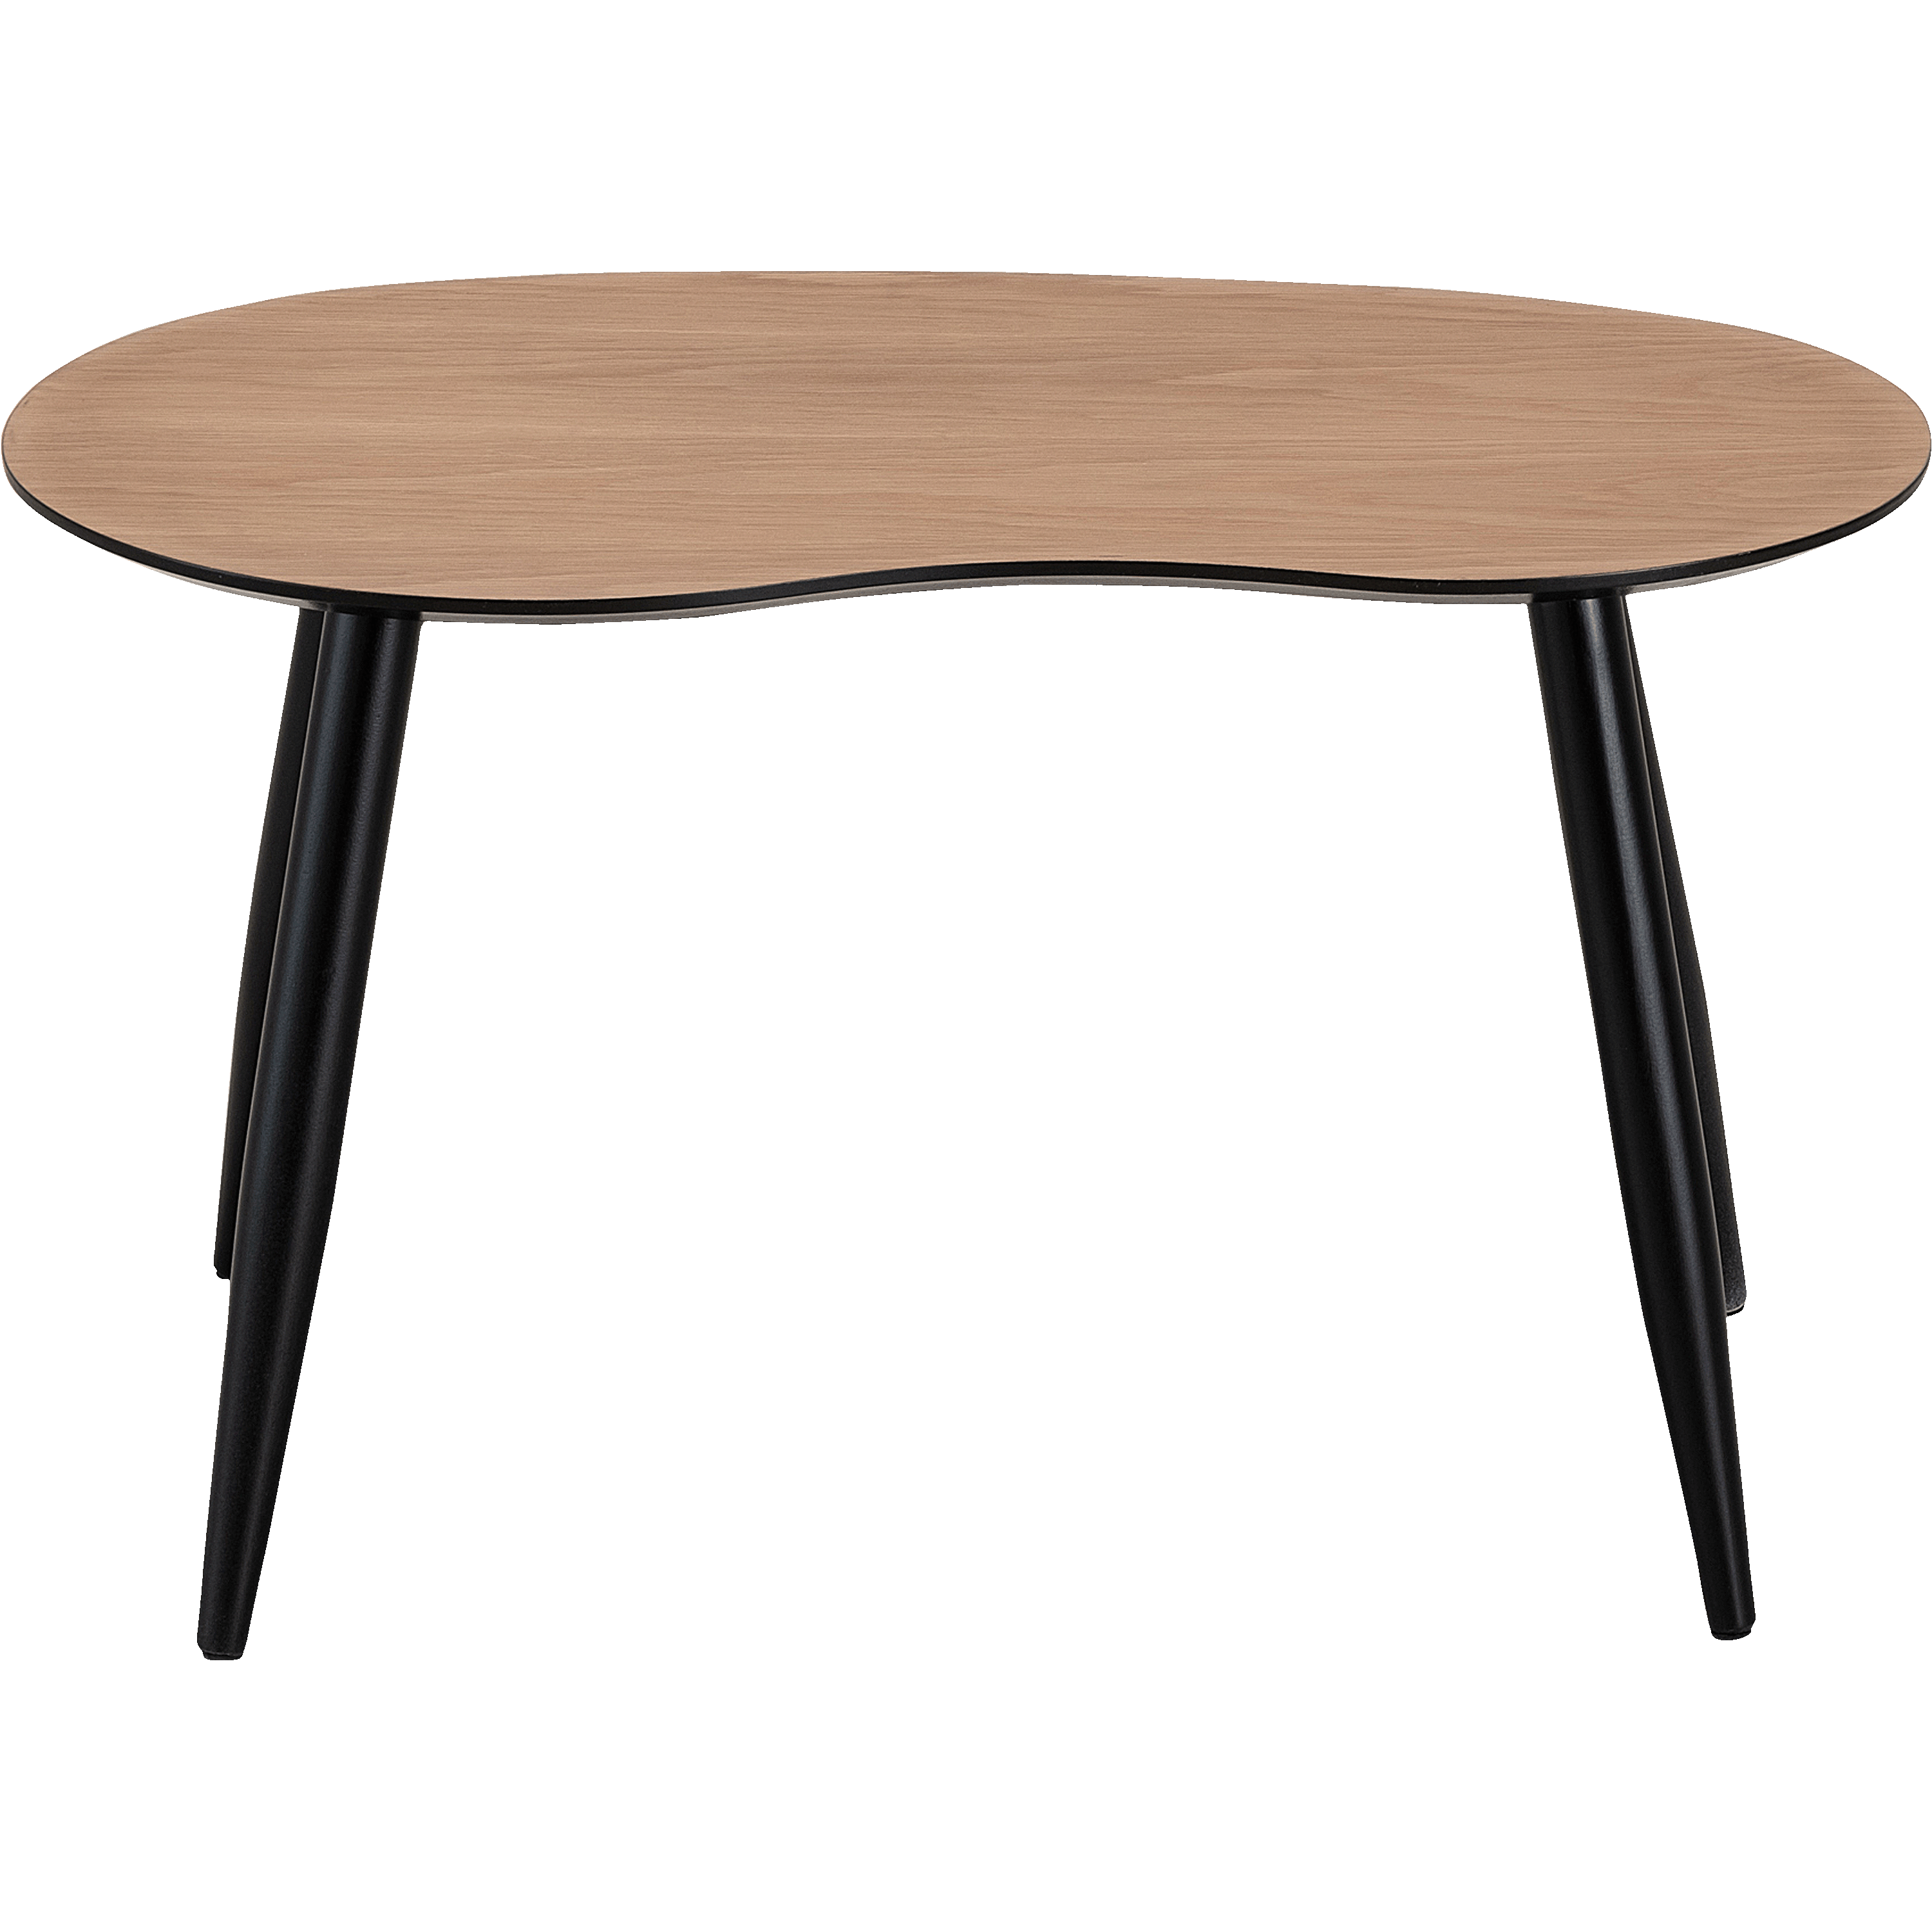 Table Basse En Massif Revetement Ardoise - onestopcolorado.com -